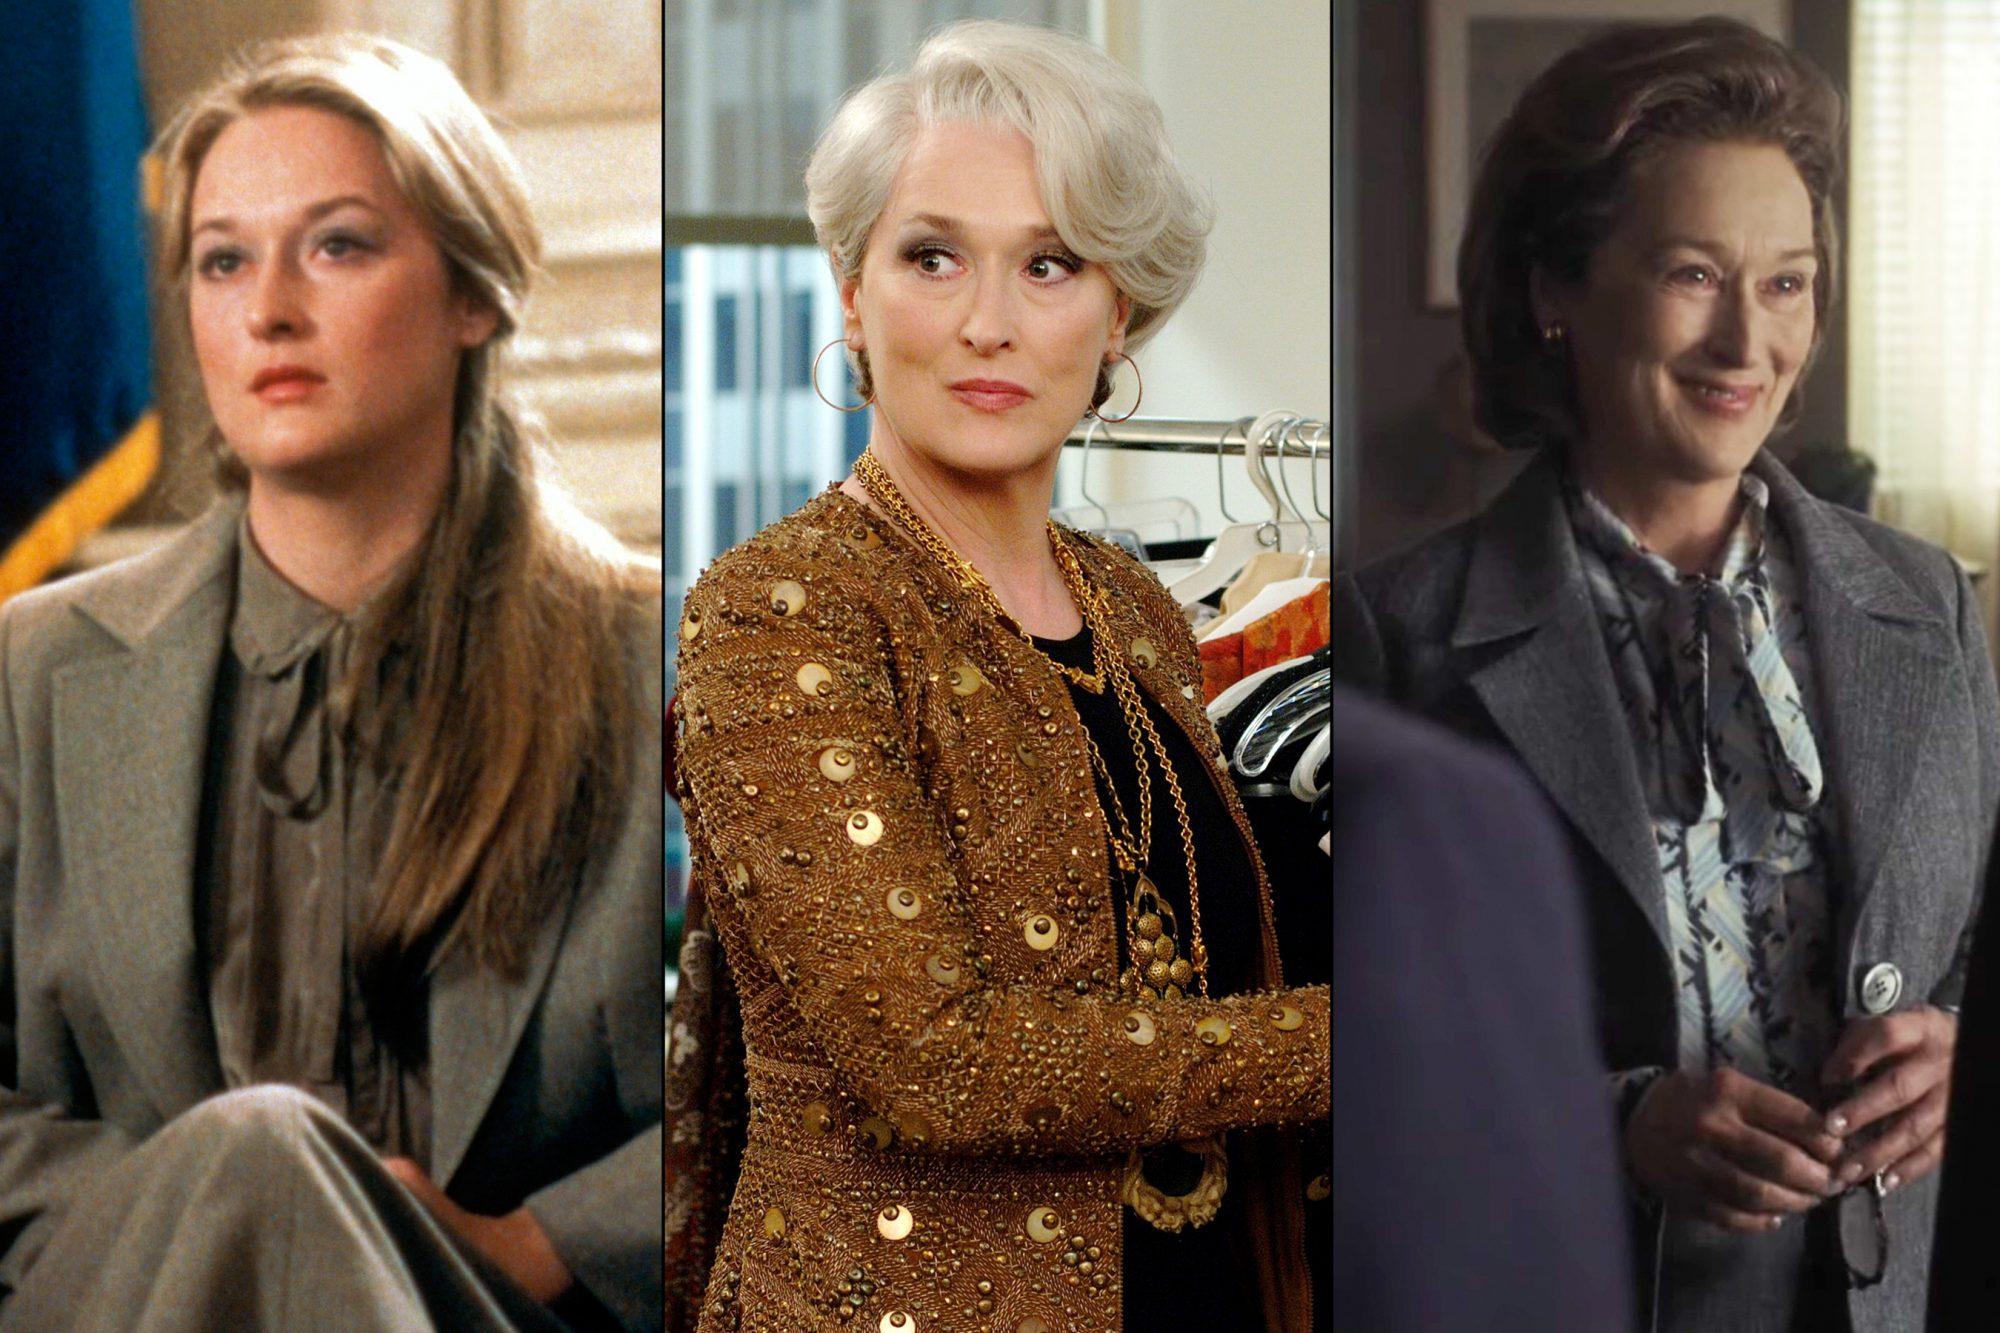 Meryl Streep, Queen of the Globes